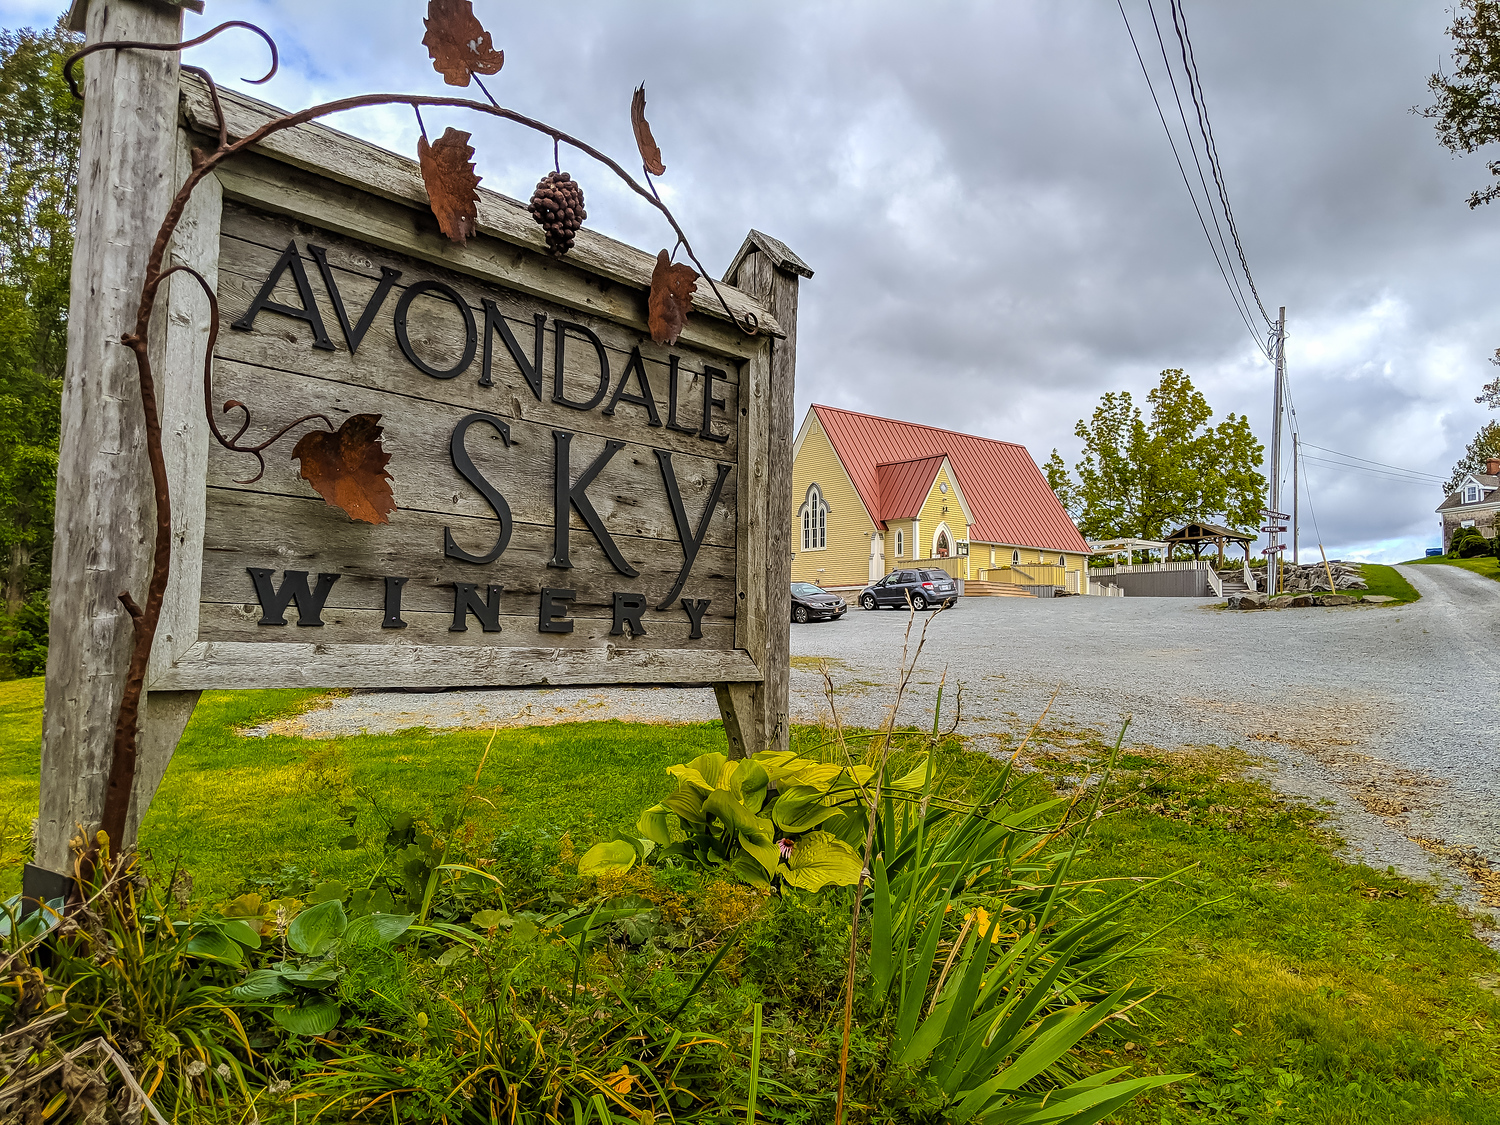 Avondale Sky Winery exterior, one of the most popular spots to drink wine in Nova Scotia.